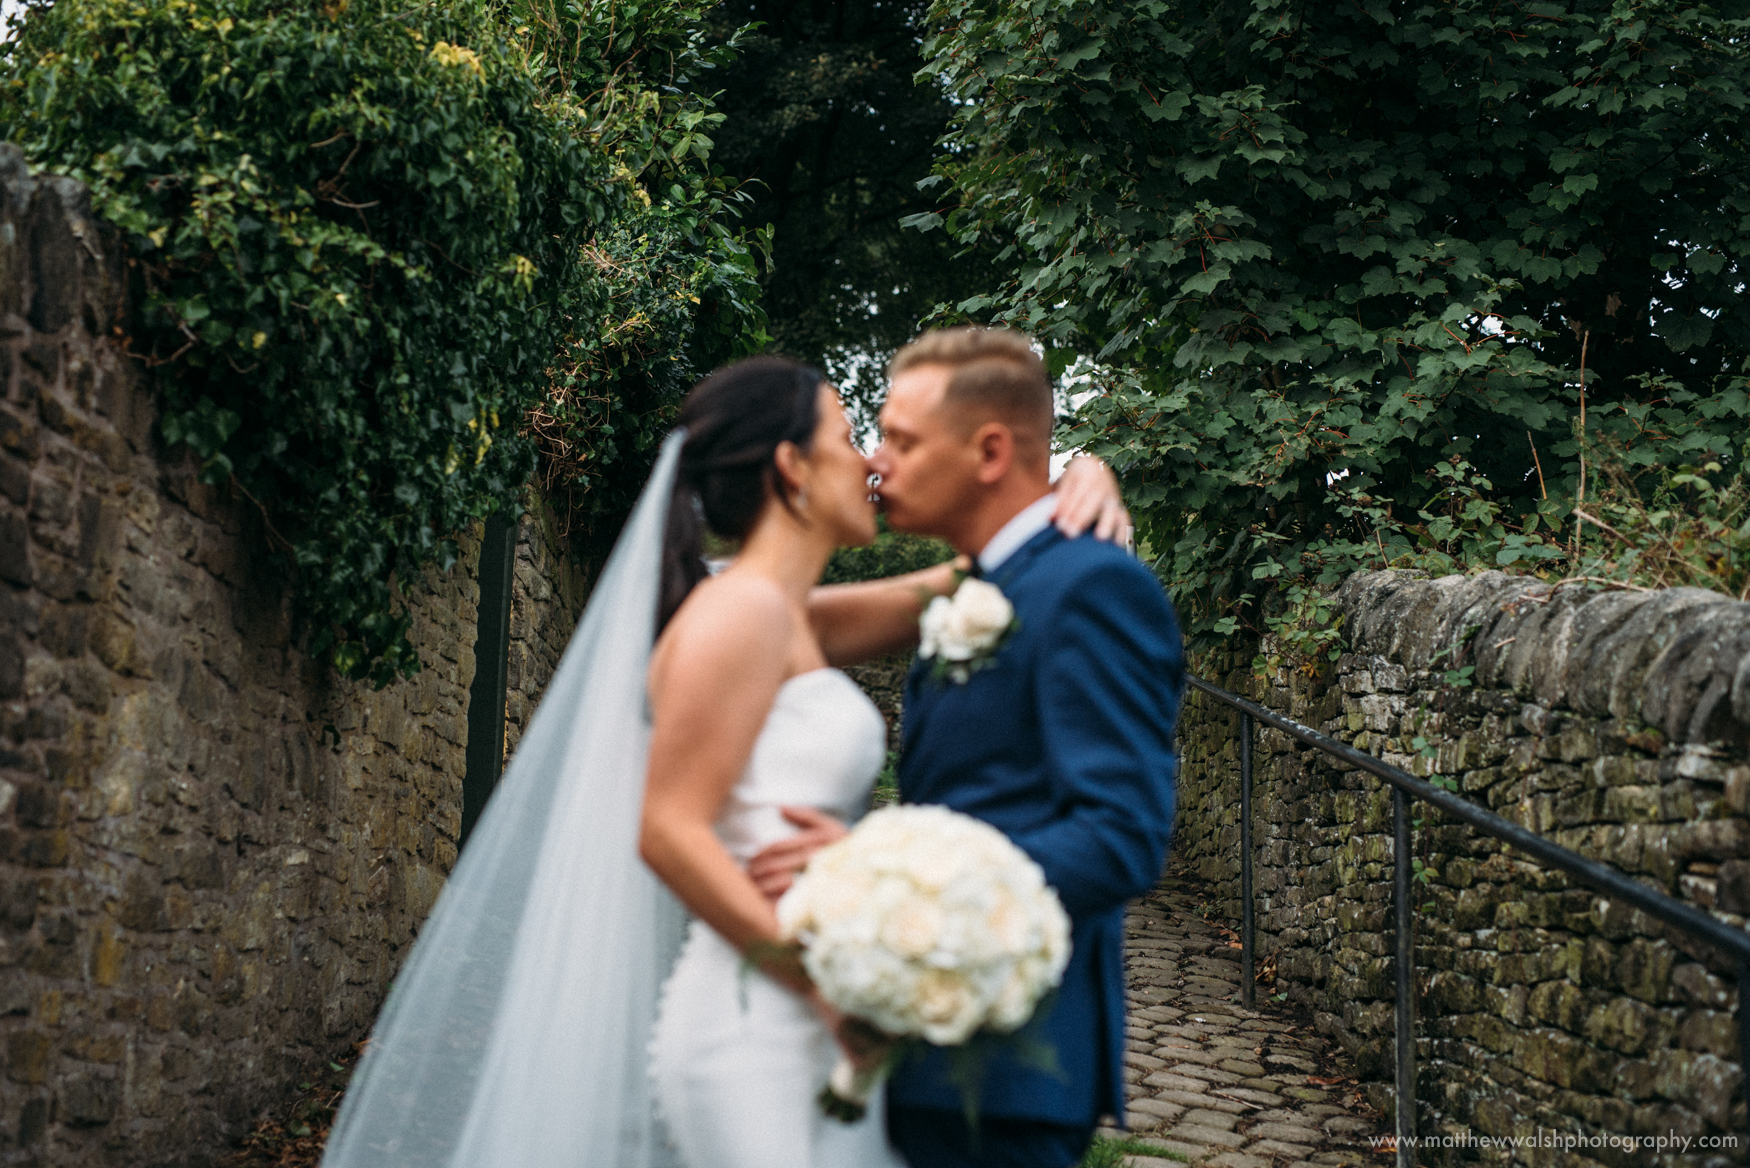 Capturing a personal moment as the bride and groom kiss